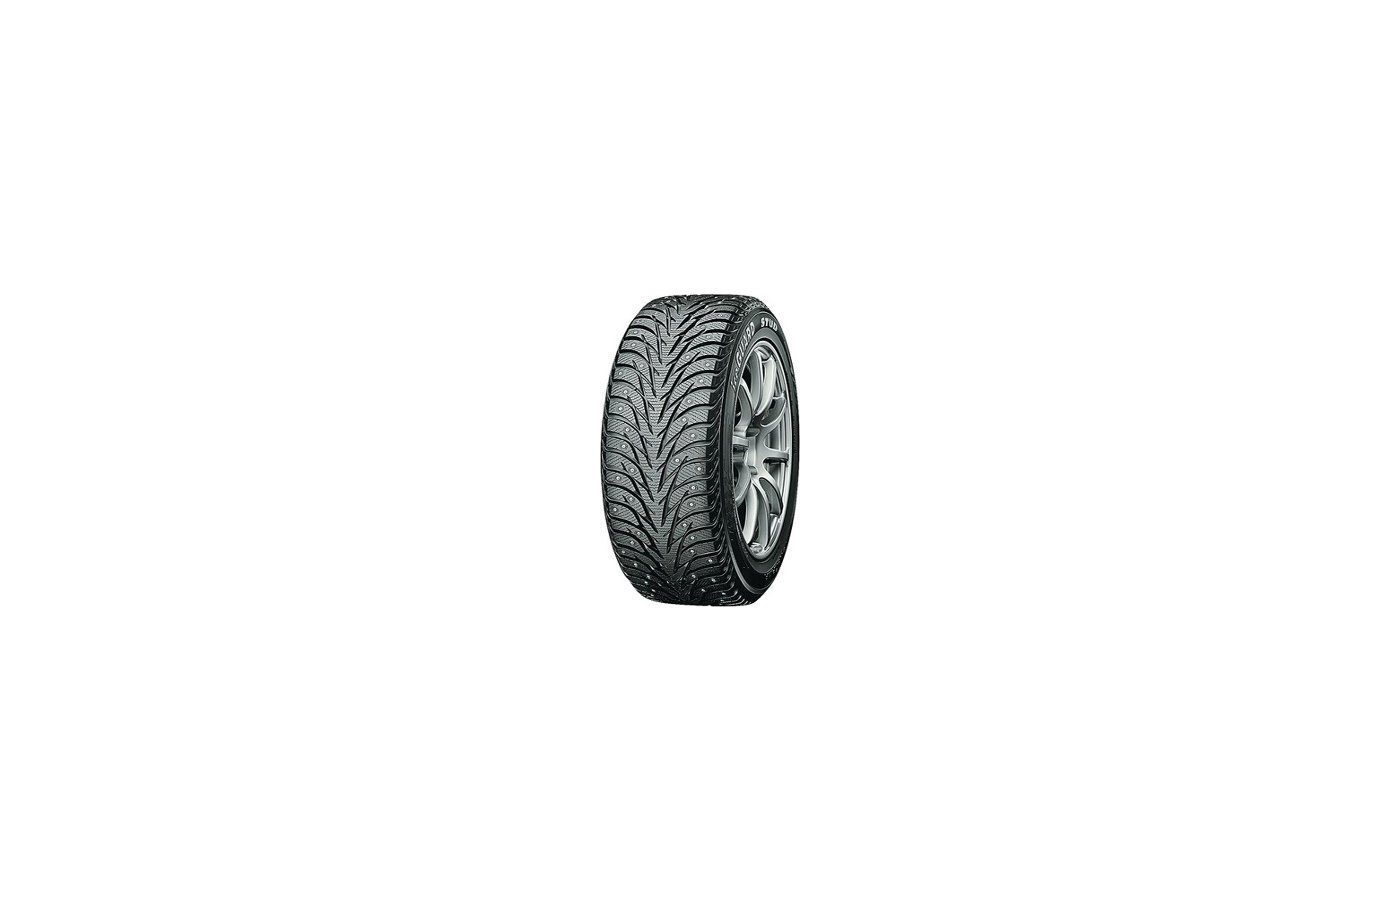 Шина Yokohama Ice Guard IG35 Plus 235/70 R16 TL 106T шип